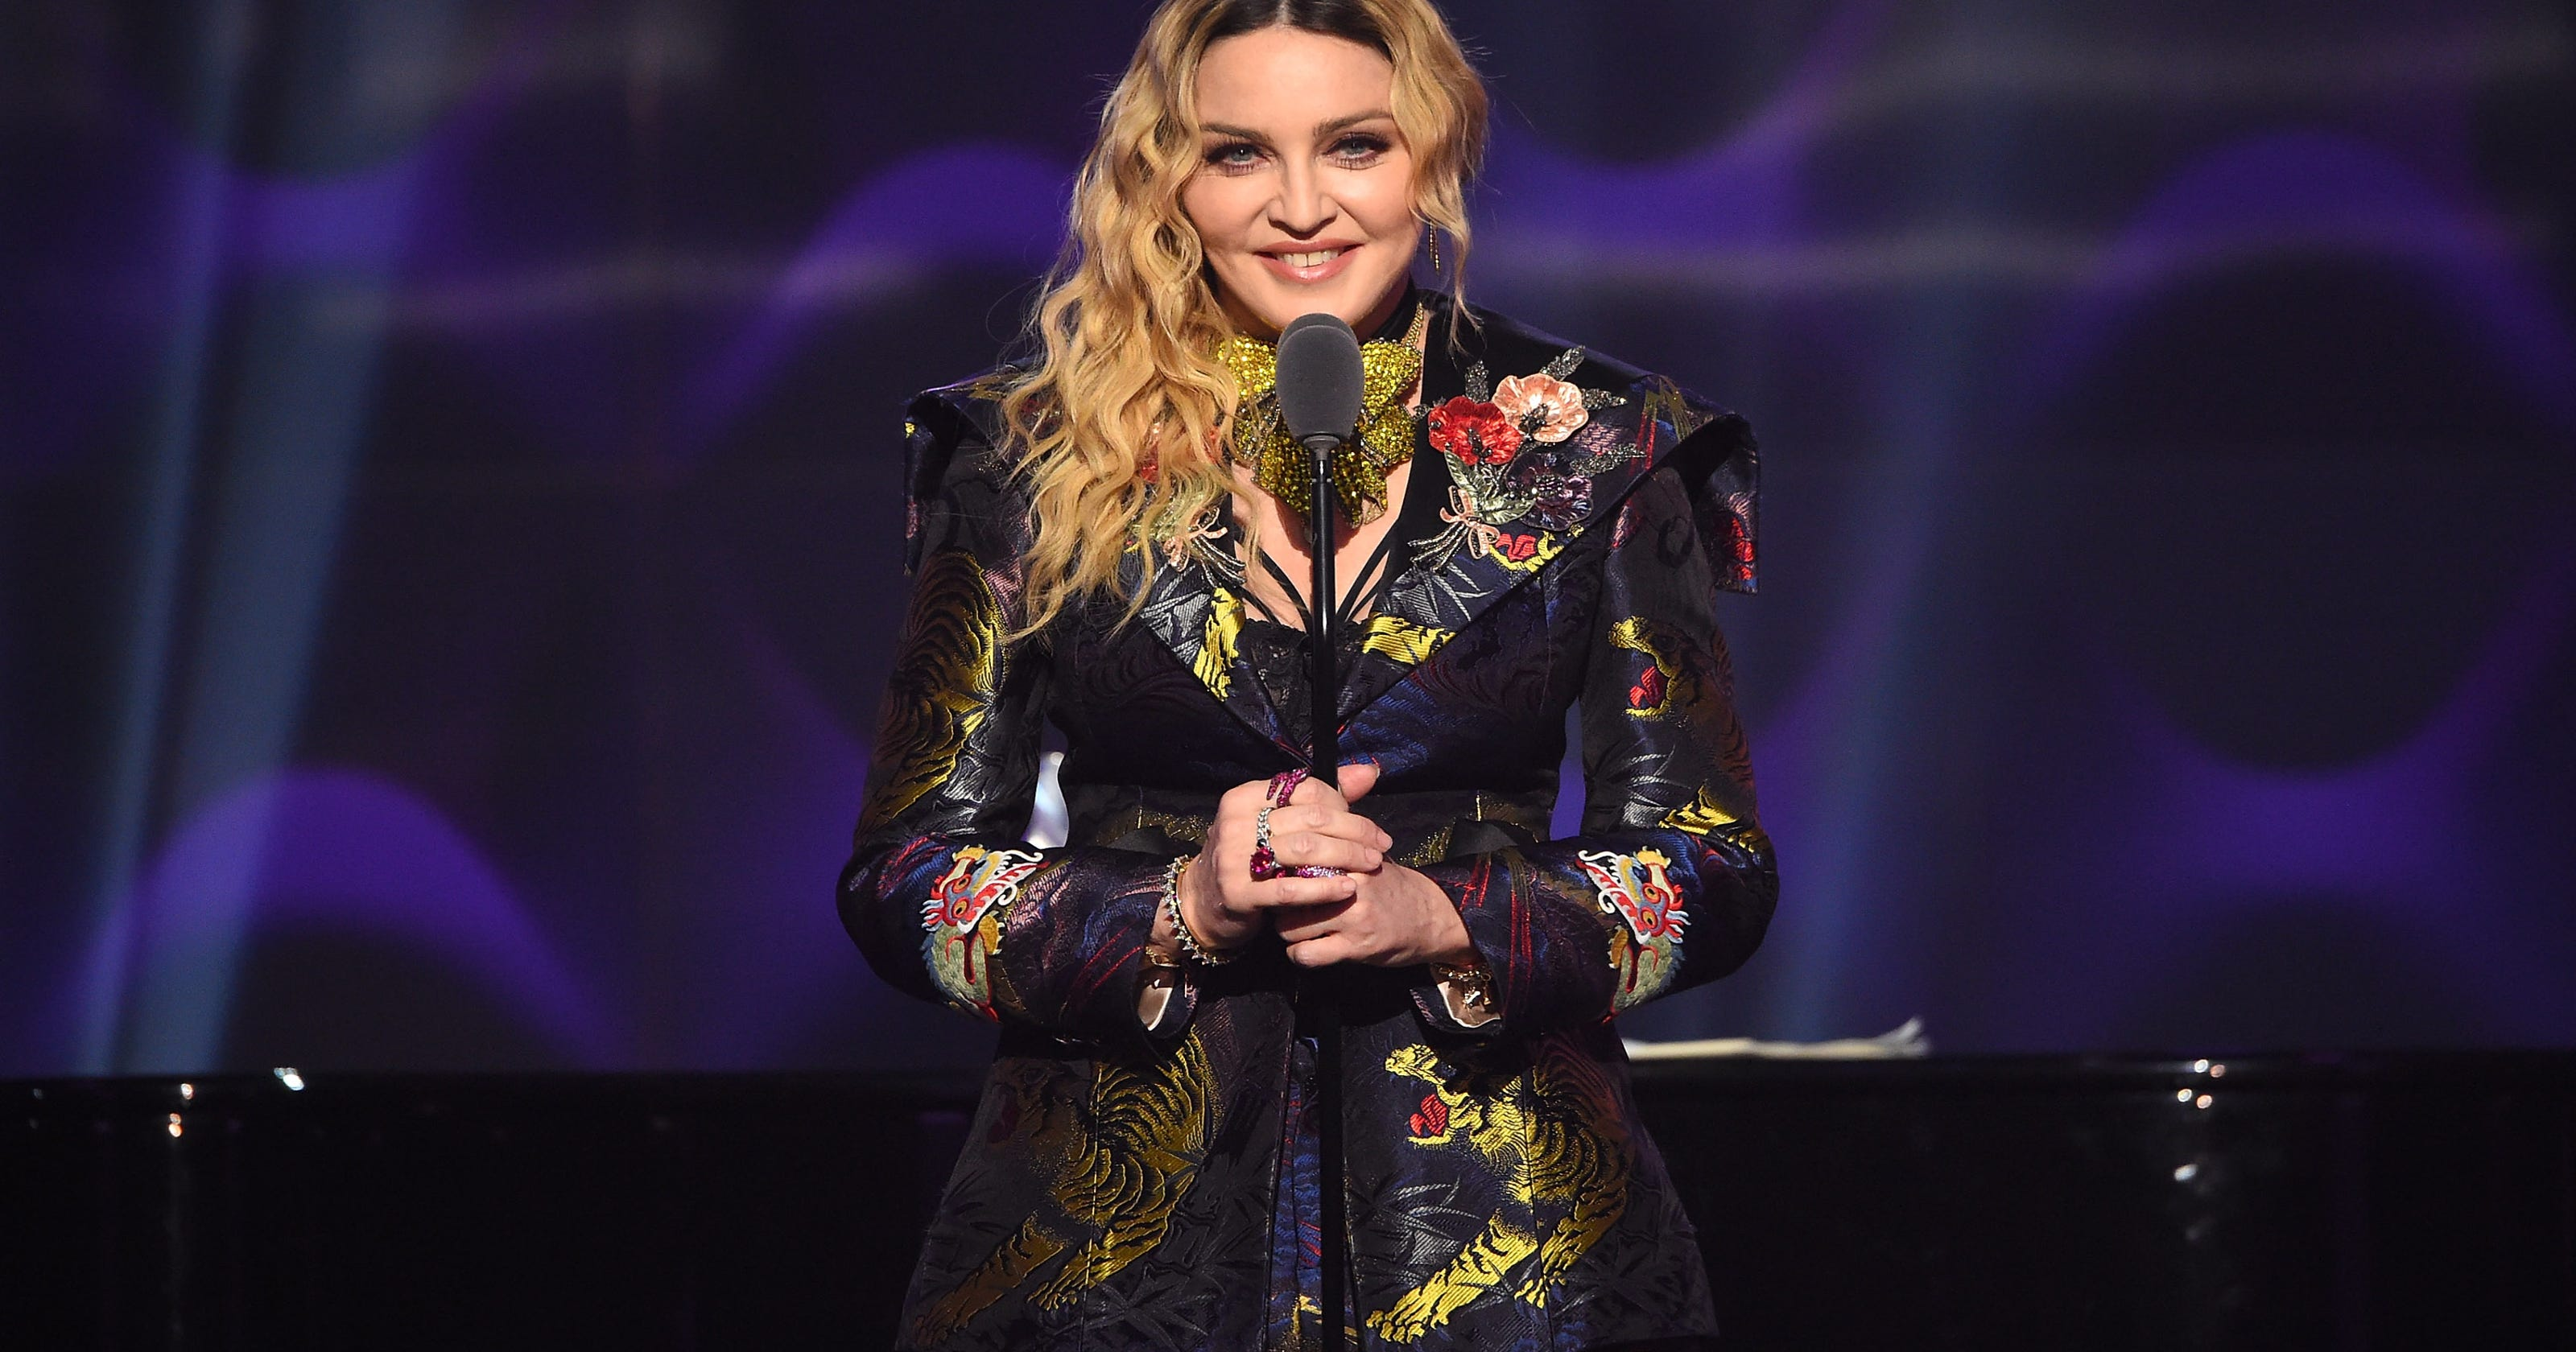 Madonna responds to 'butt implant' speculation and body-shamers